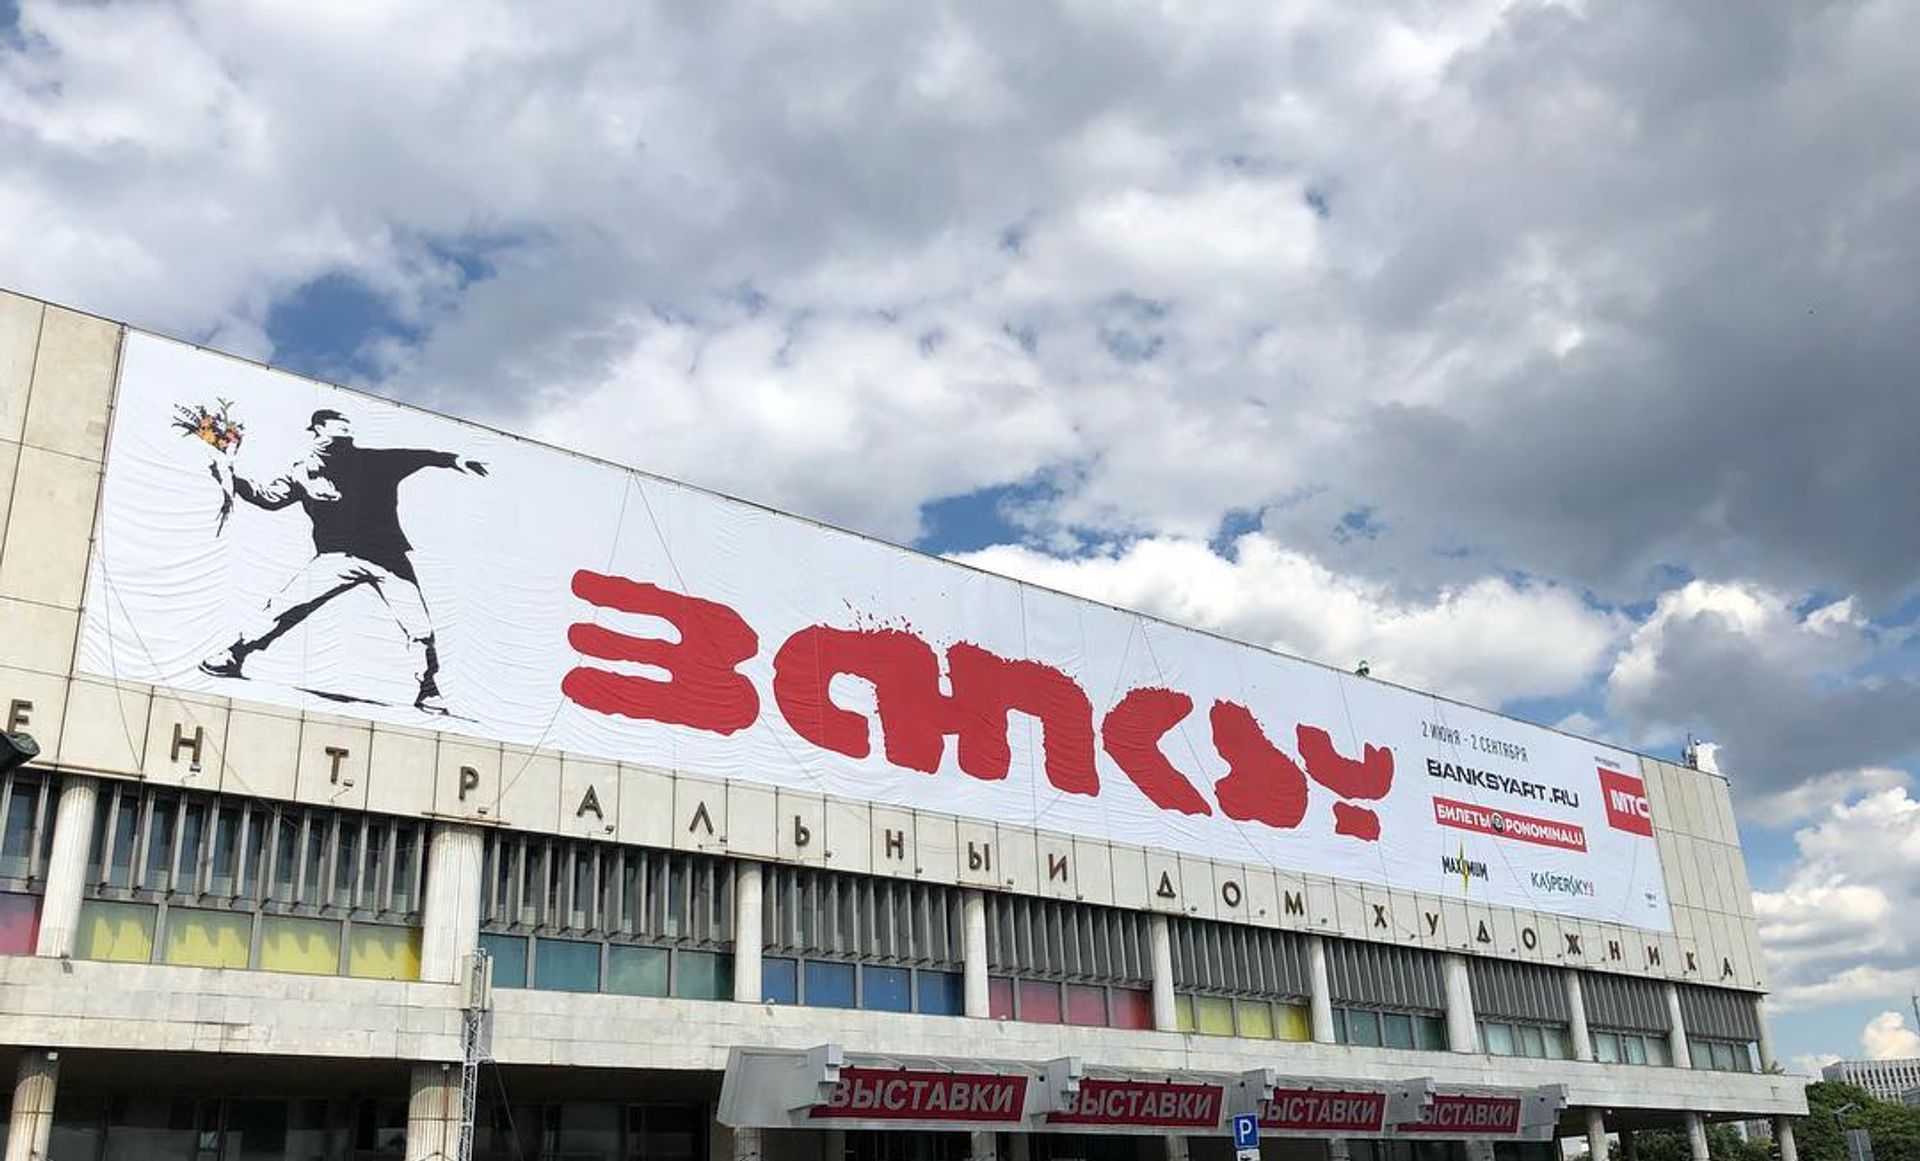 Genius or Vandal? It's Up to You, an exhibition of Banksy's work, is on view in Moscow until 2 September and then travels to St Petersburg Courtesy of IQ Art Management Corporation